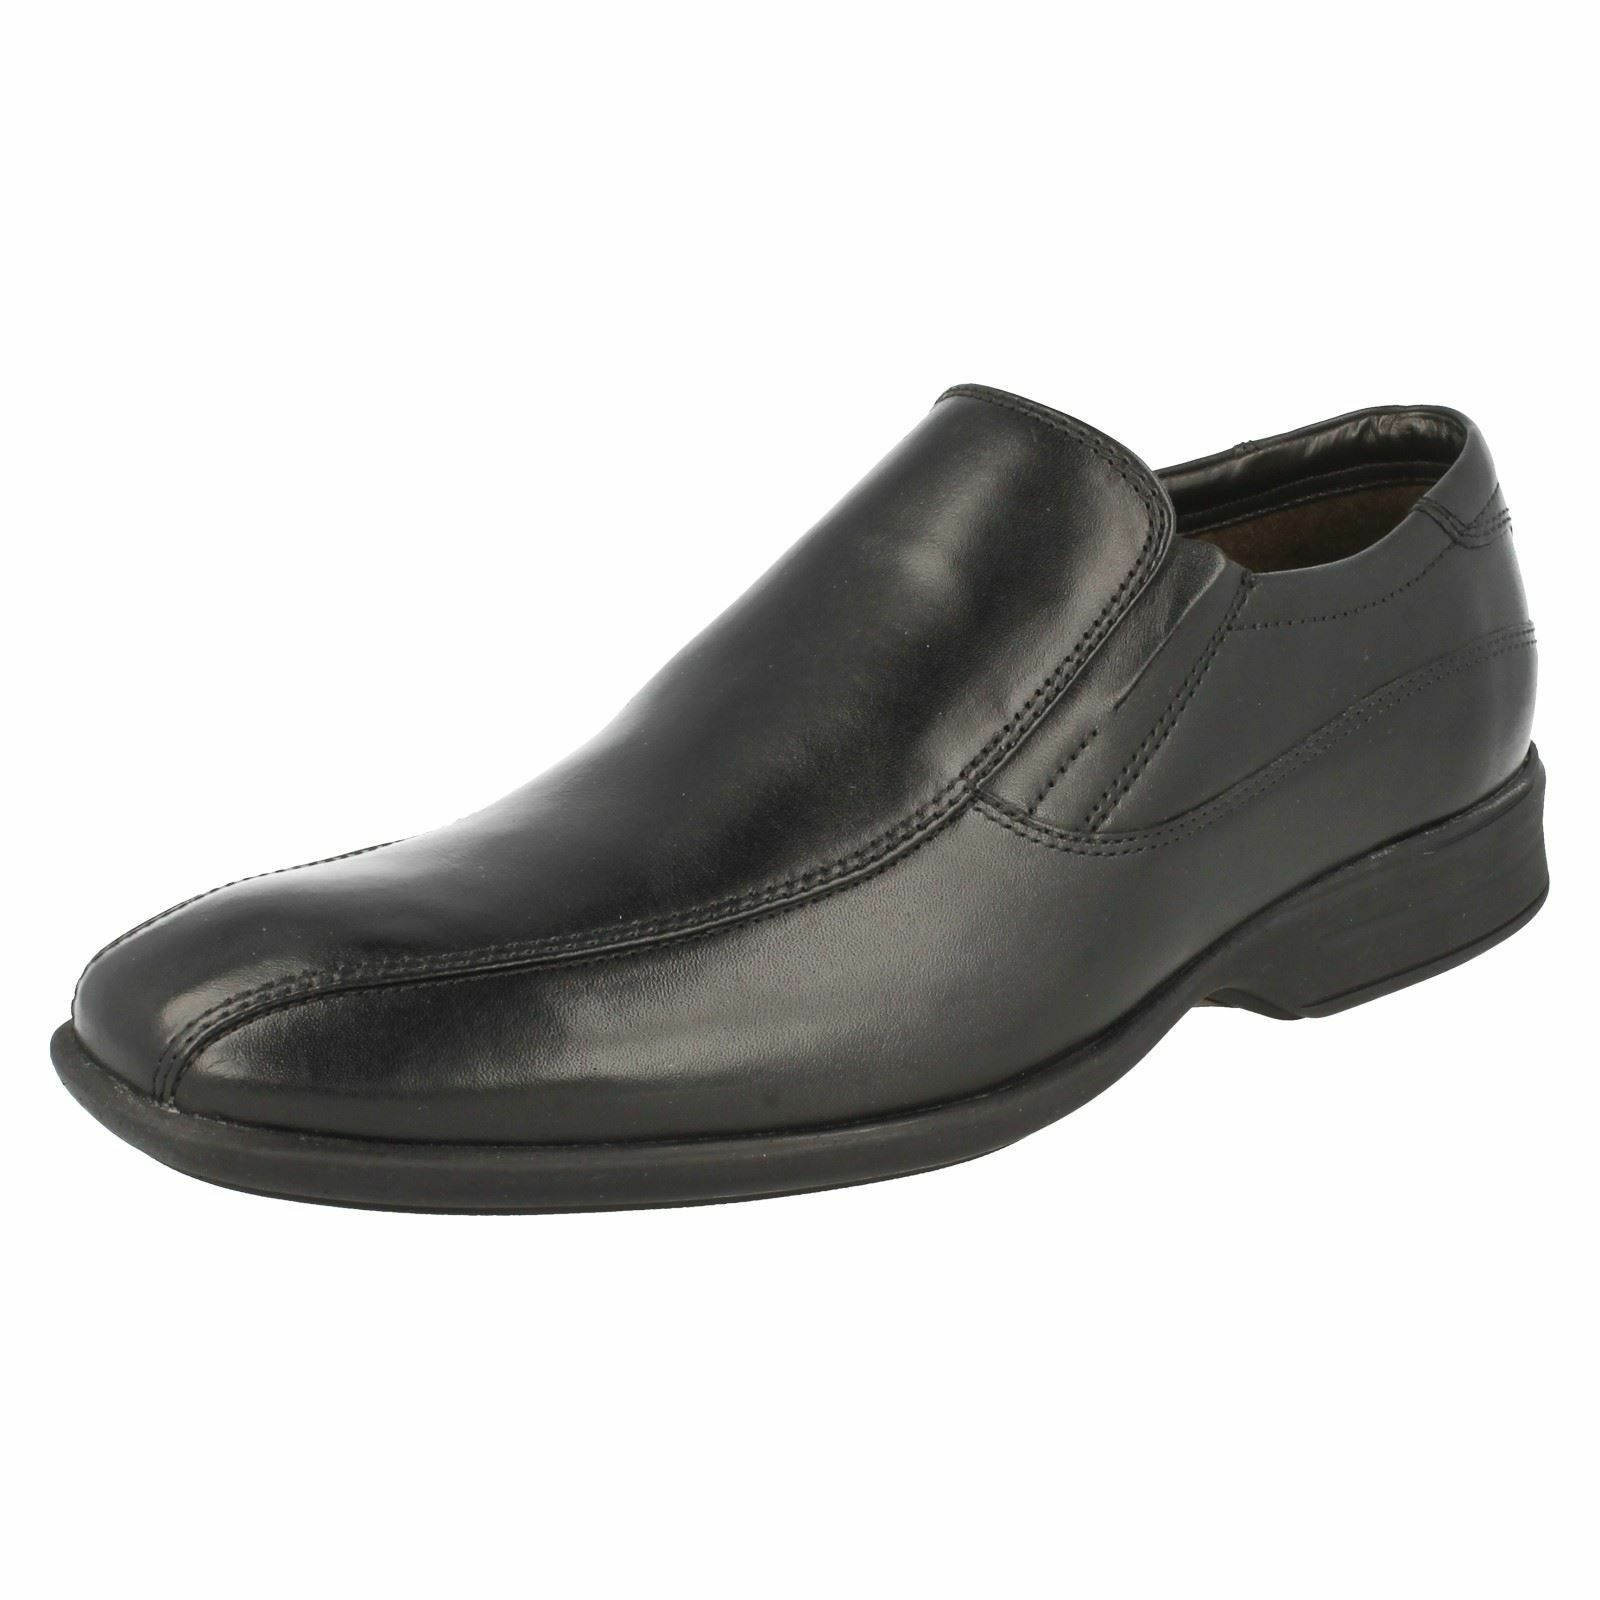 Mens Clarks Black Leather Slip On Shoes UK Sizes 6 - 11 Gadwell Stride